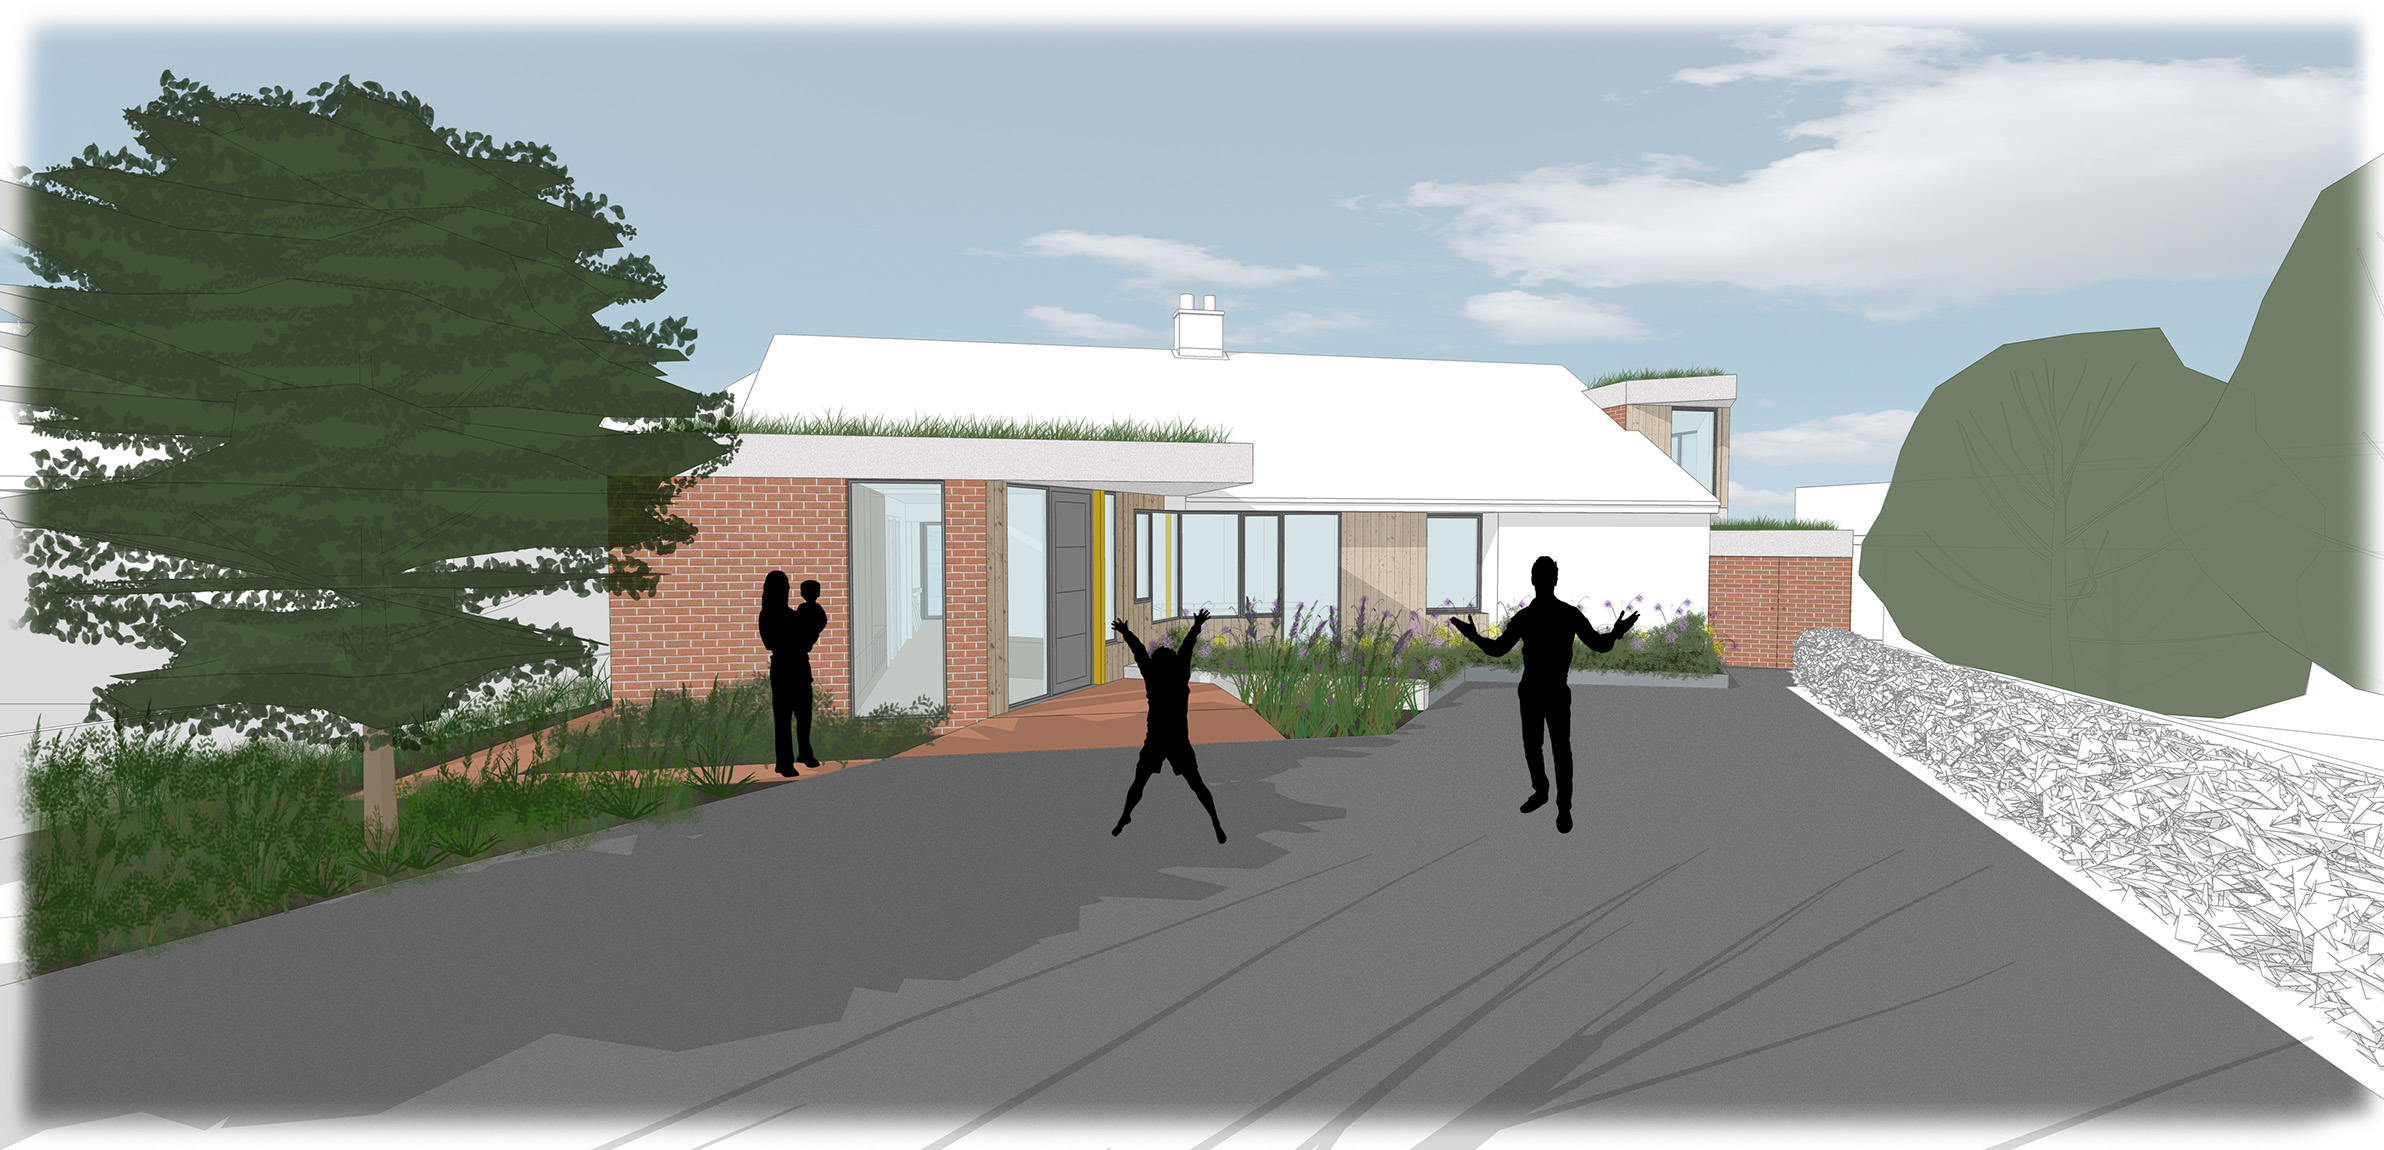 Feasibility Study 2 - Front view